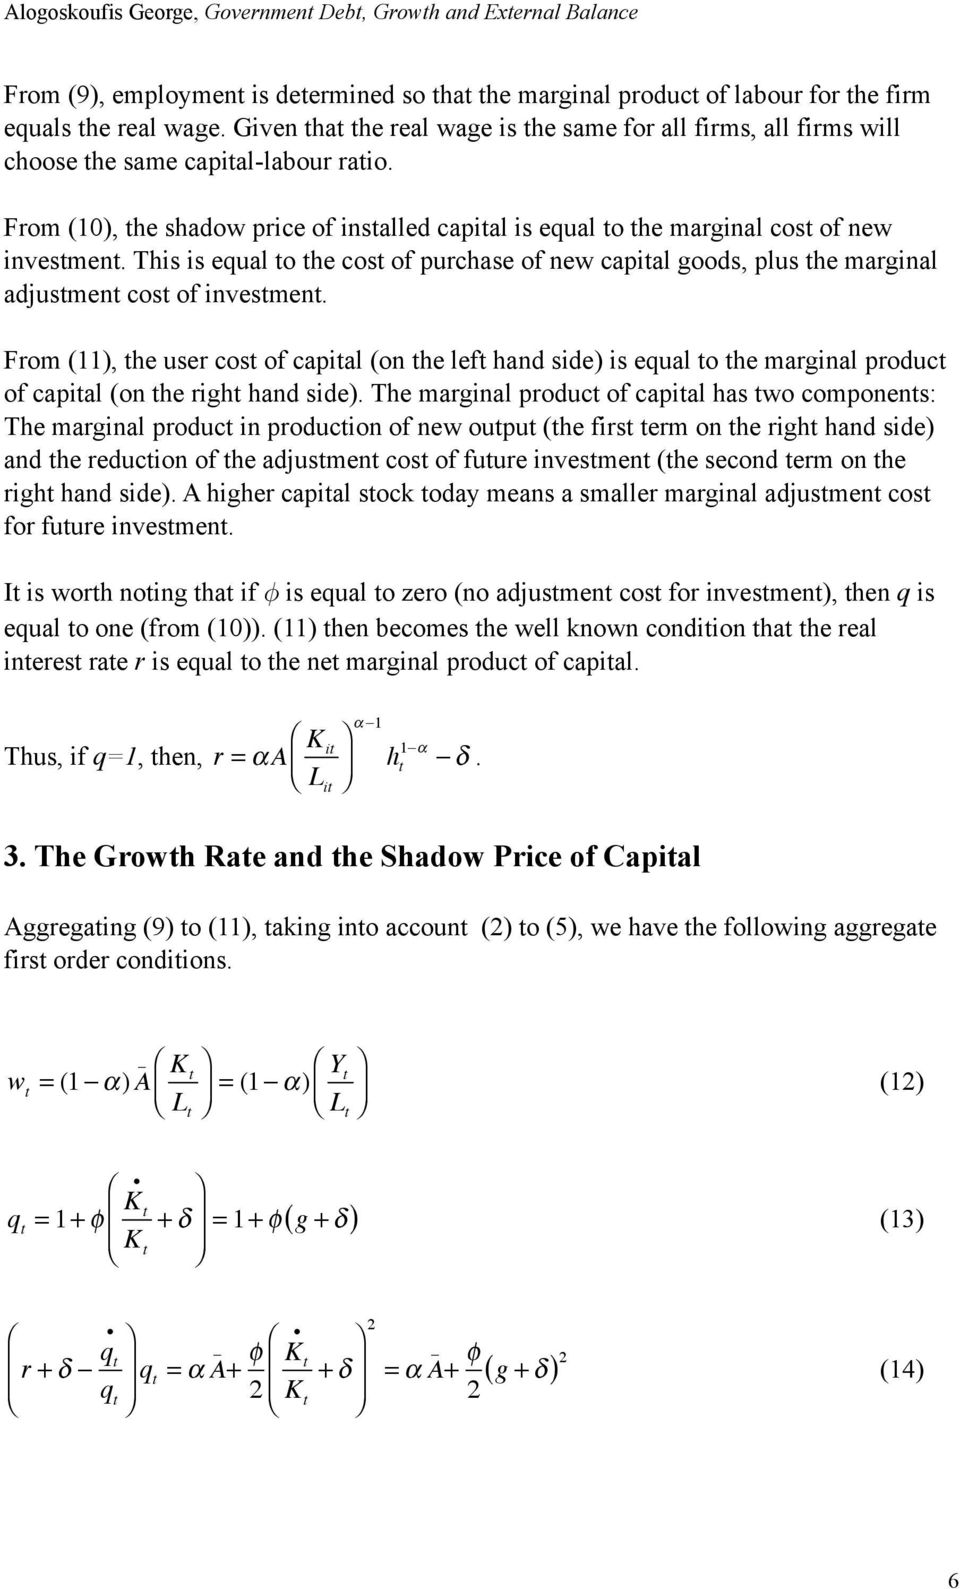 From (10), the shadow price of installed capital is equal to the marginal cost of new investment.